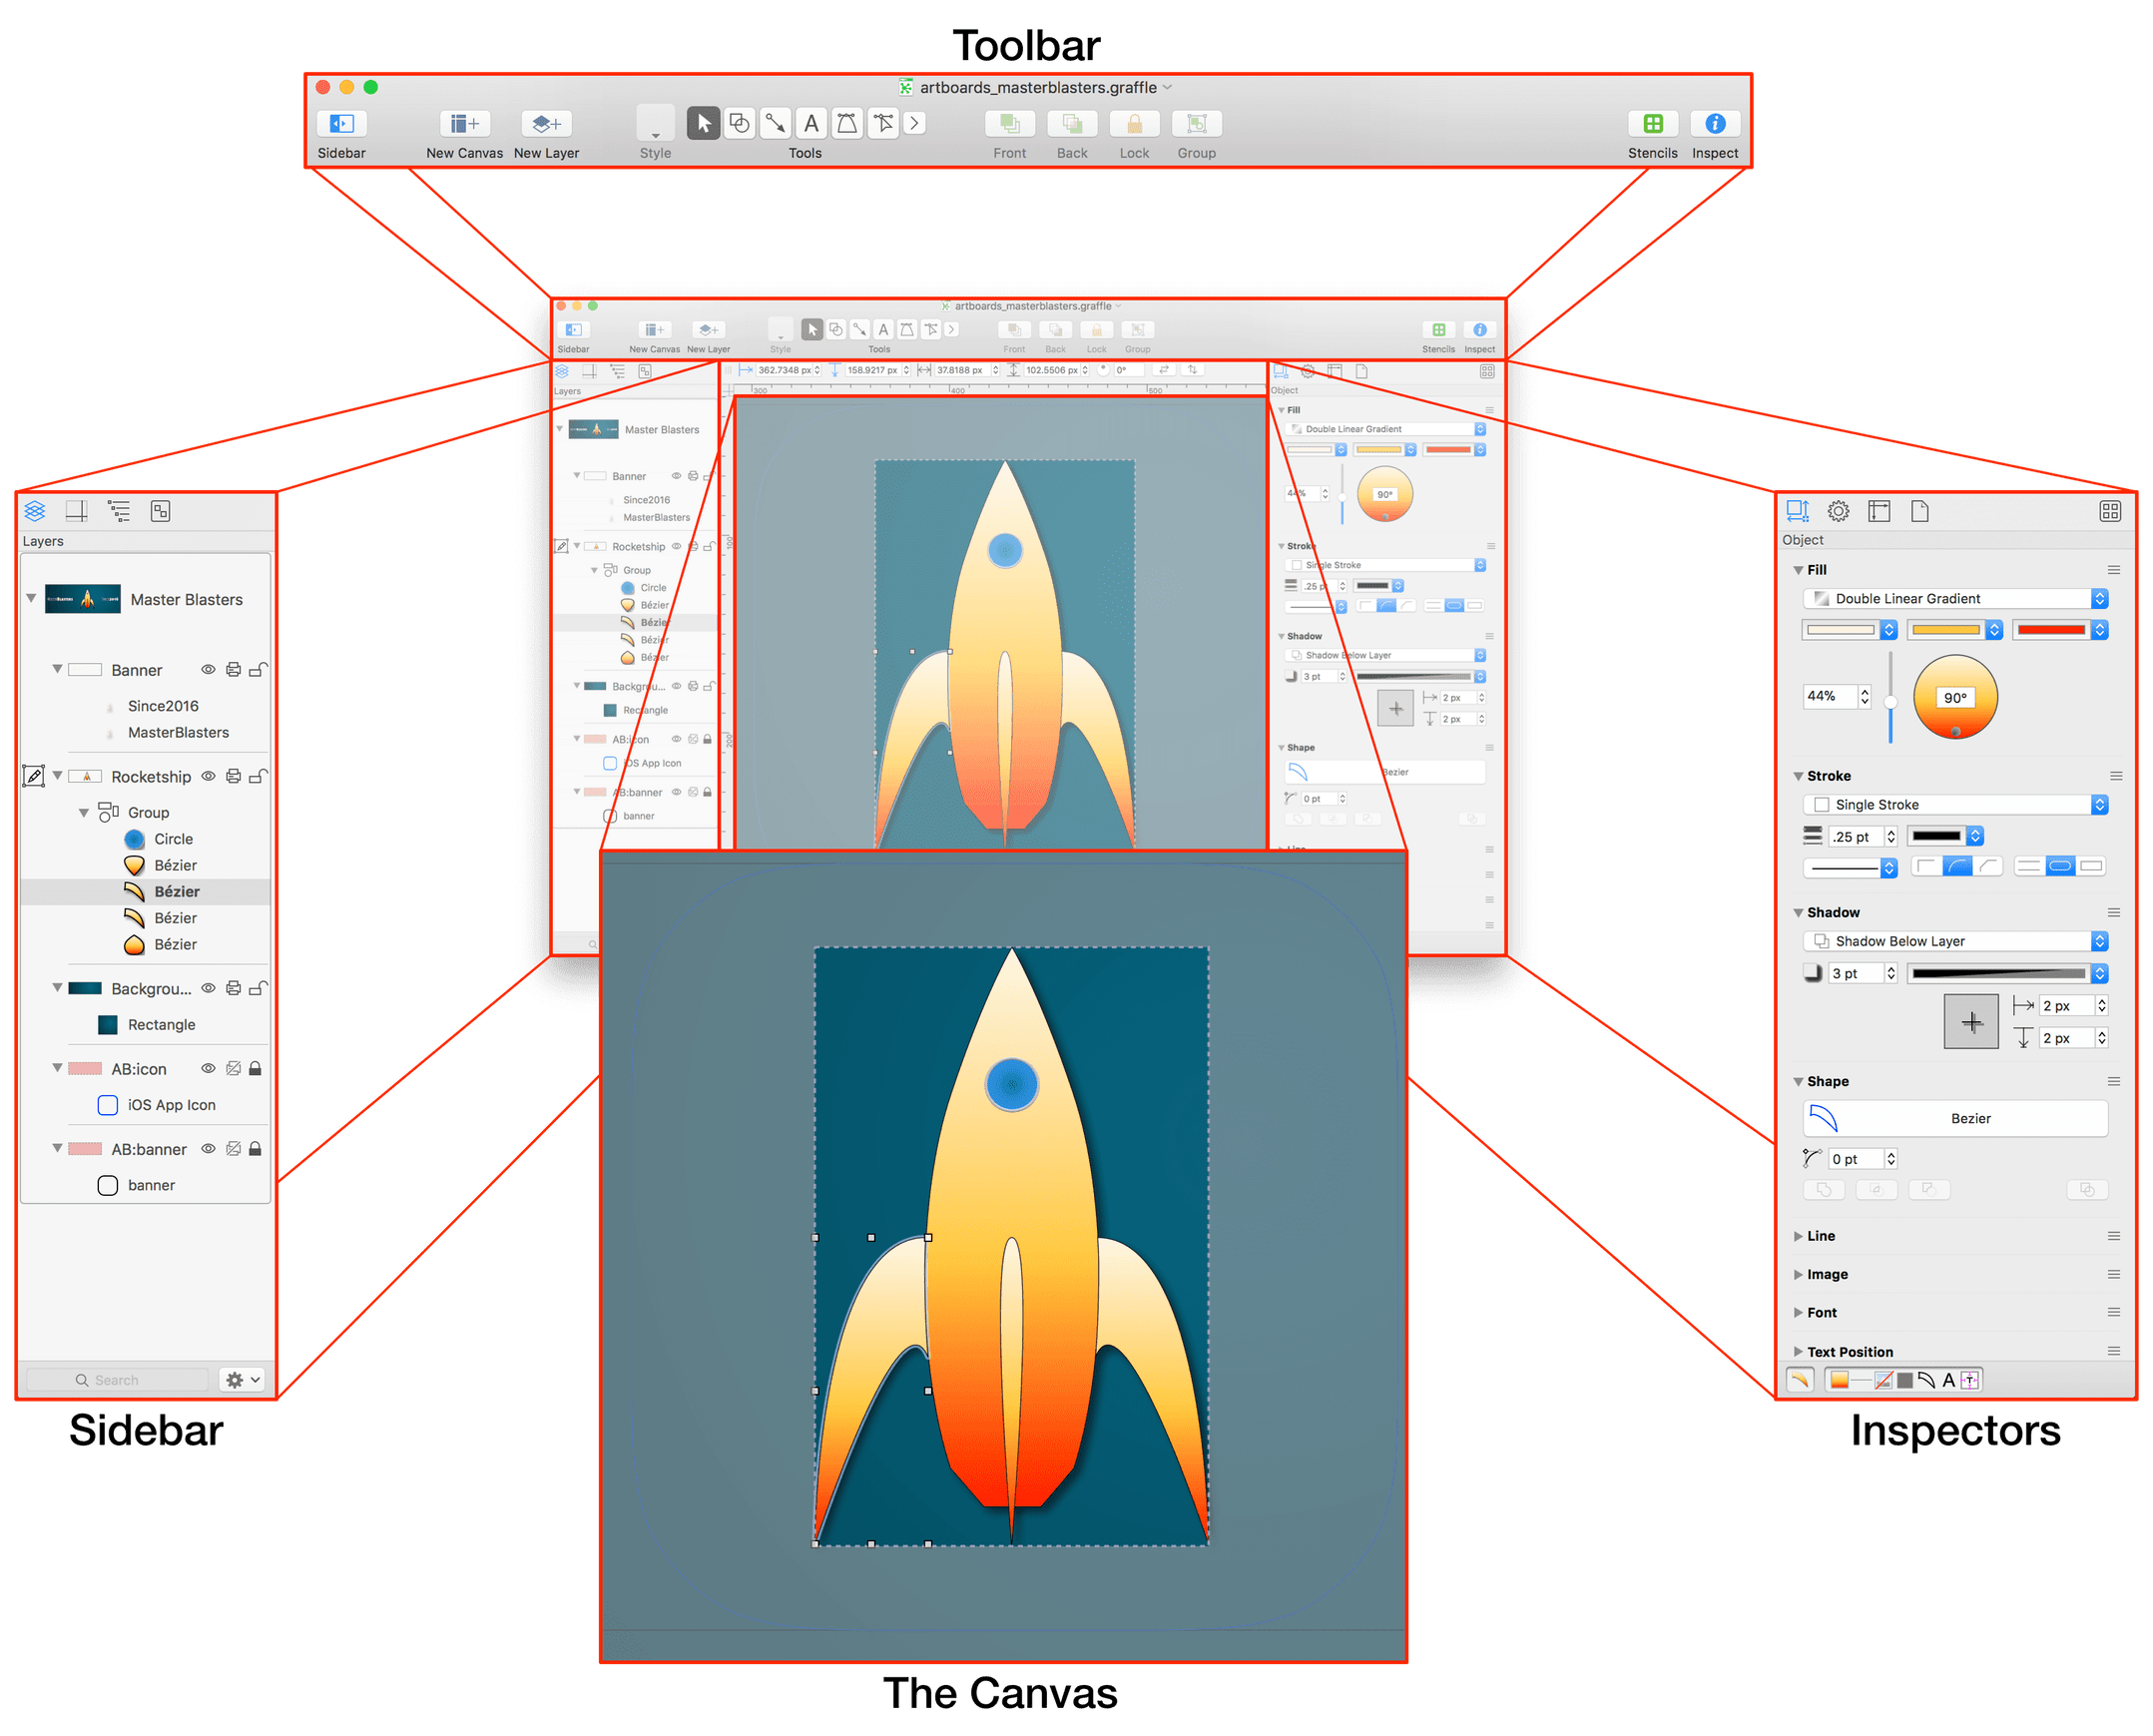 An OmniGraffle window with callouts pointing to the Toolbar on top, the Sidebar on the left side, the Inspectors bar on the right side, and the Canvas in the center.